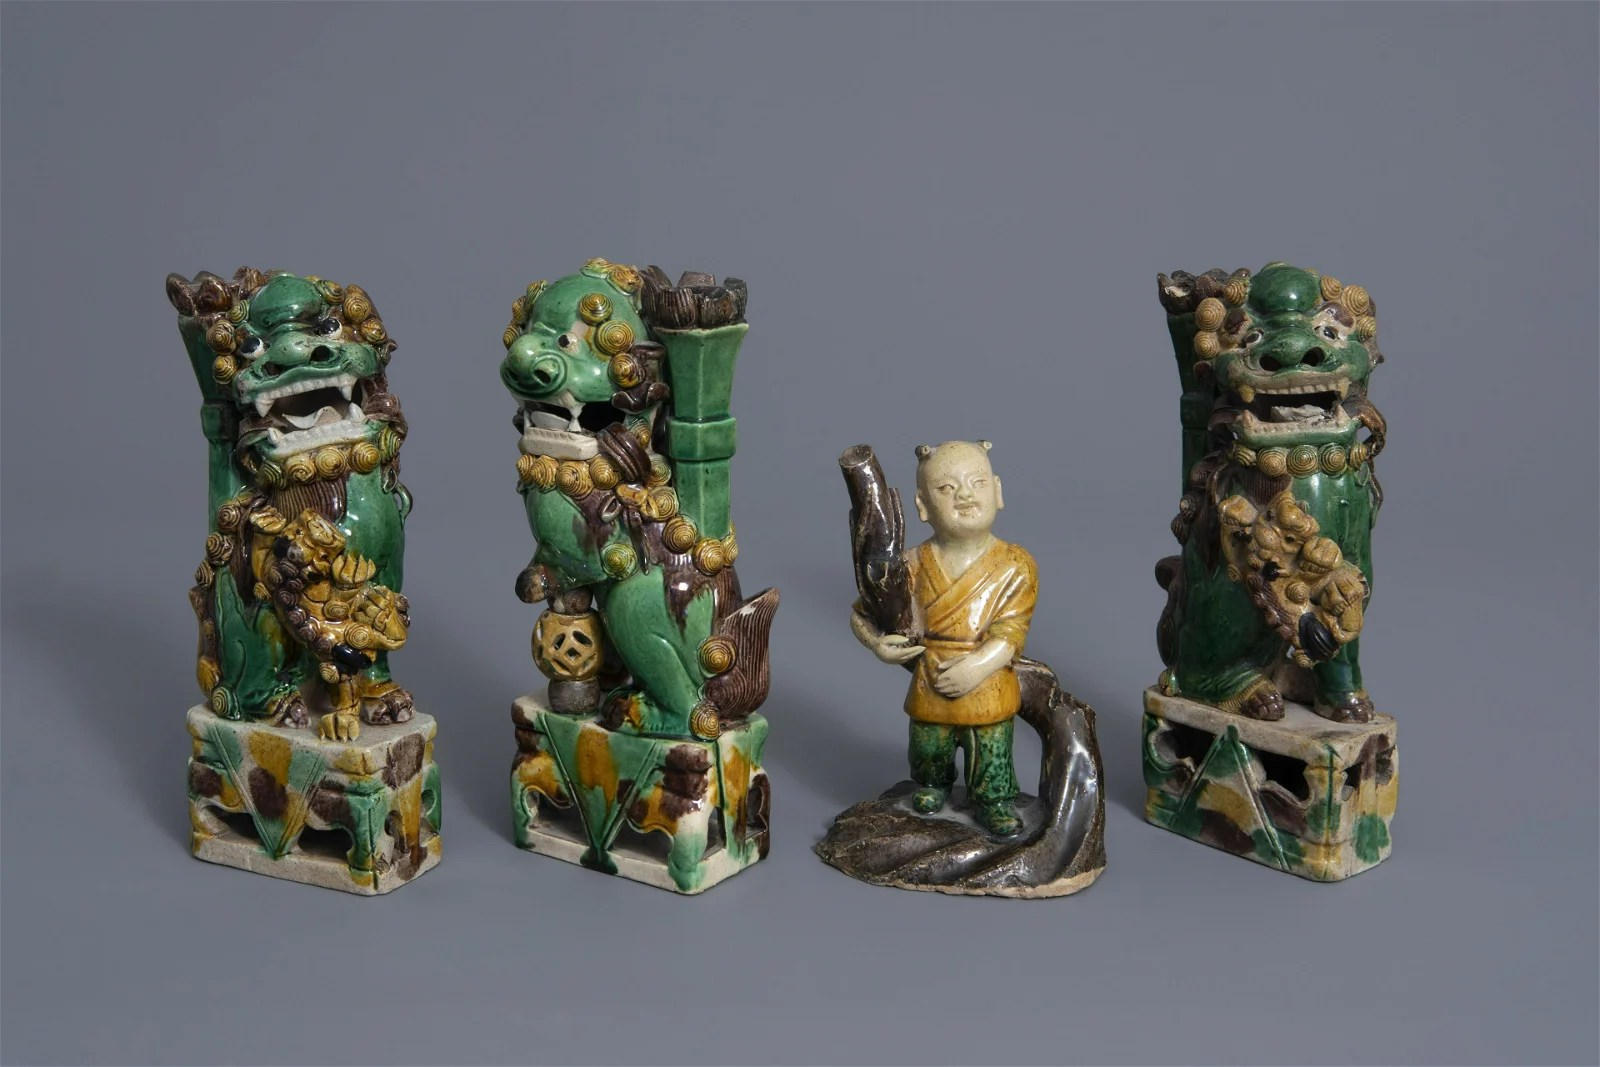 Three Chinese famille verte biscuit models of Buddhist